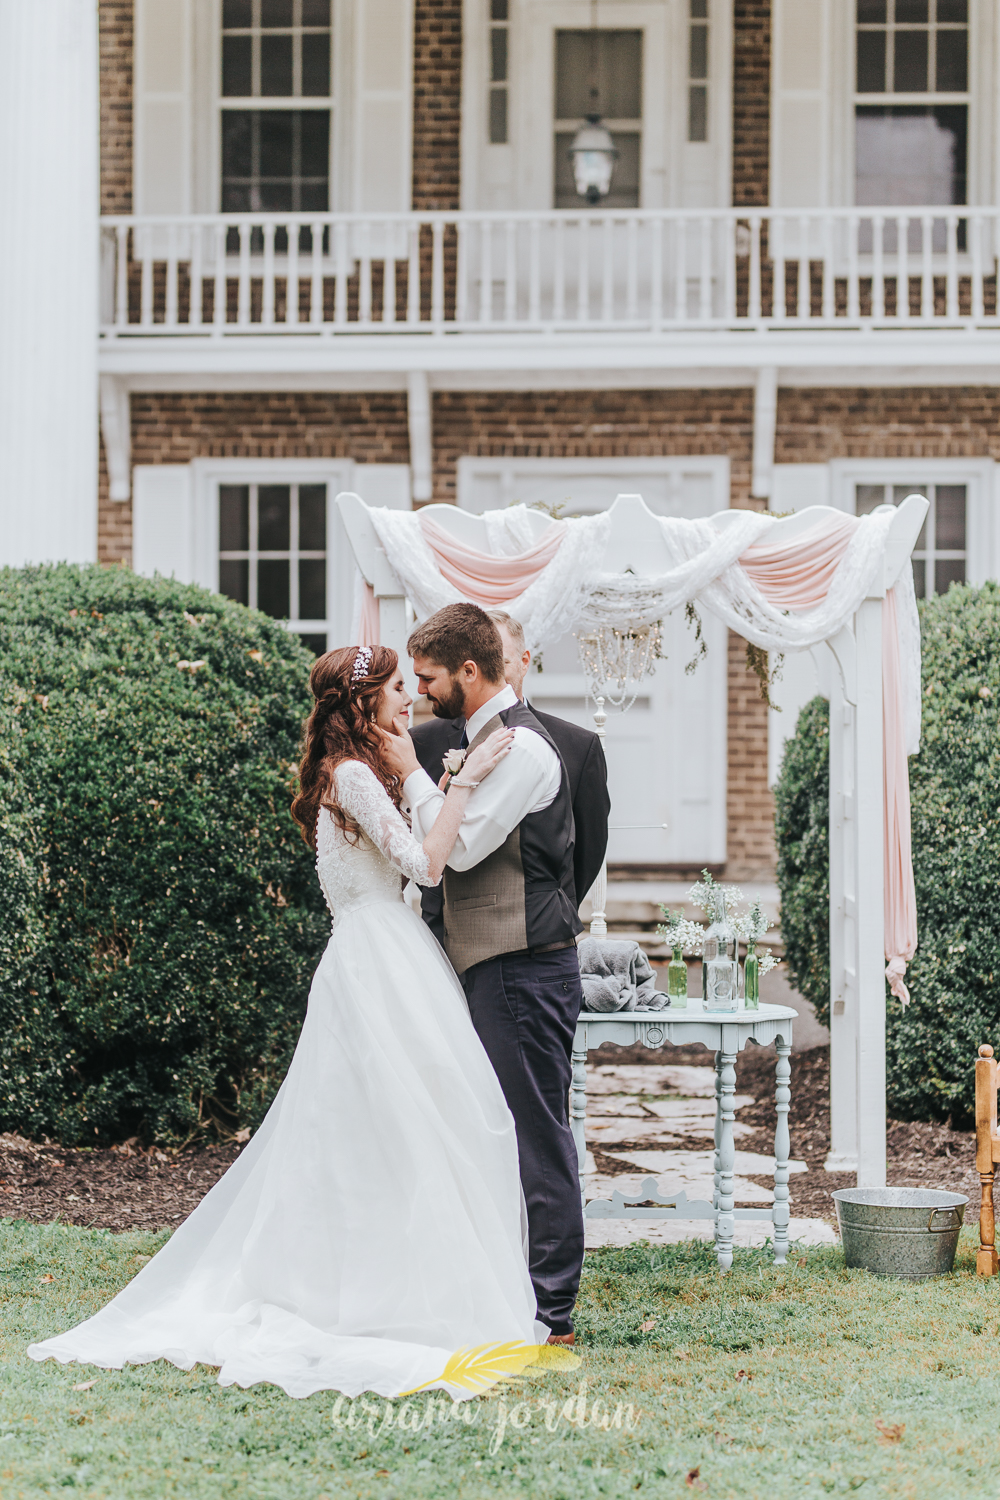 171 - Ariana Jordan - Kentucky Wedding Photographer - Landon & Tabitha_.jpg